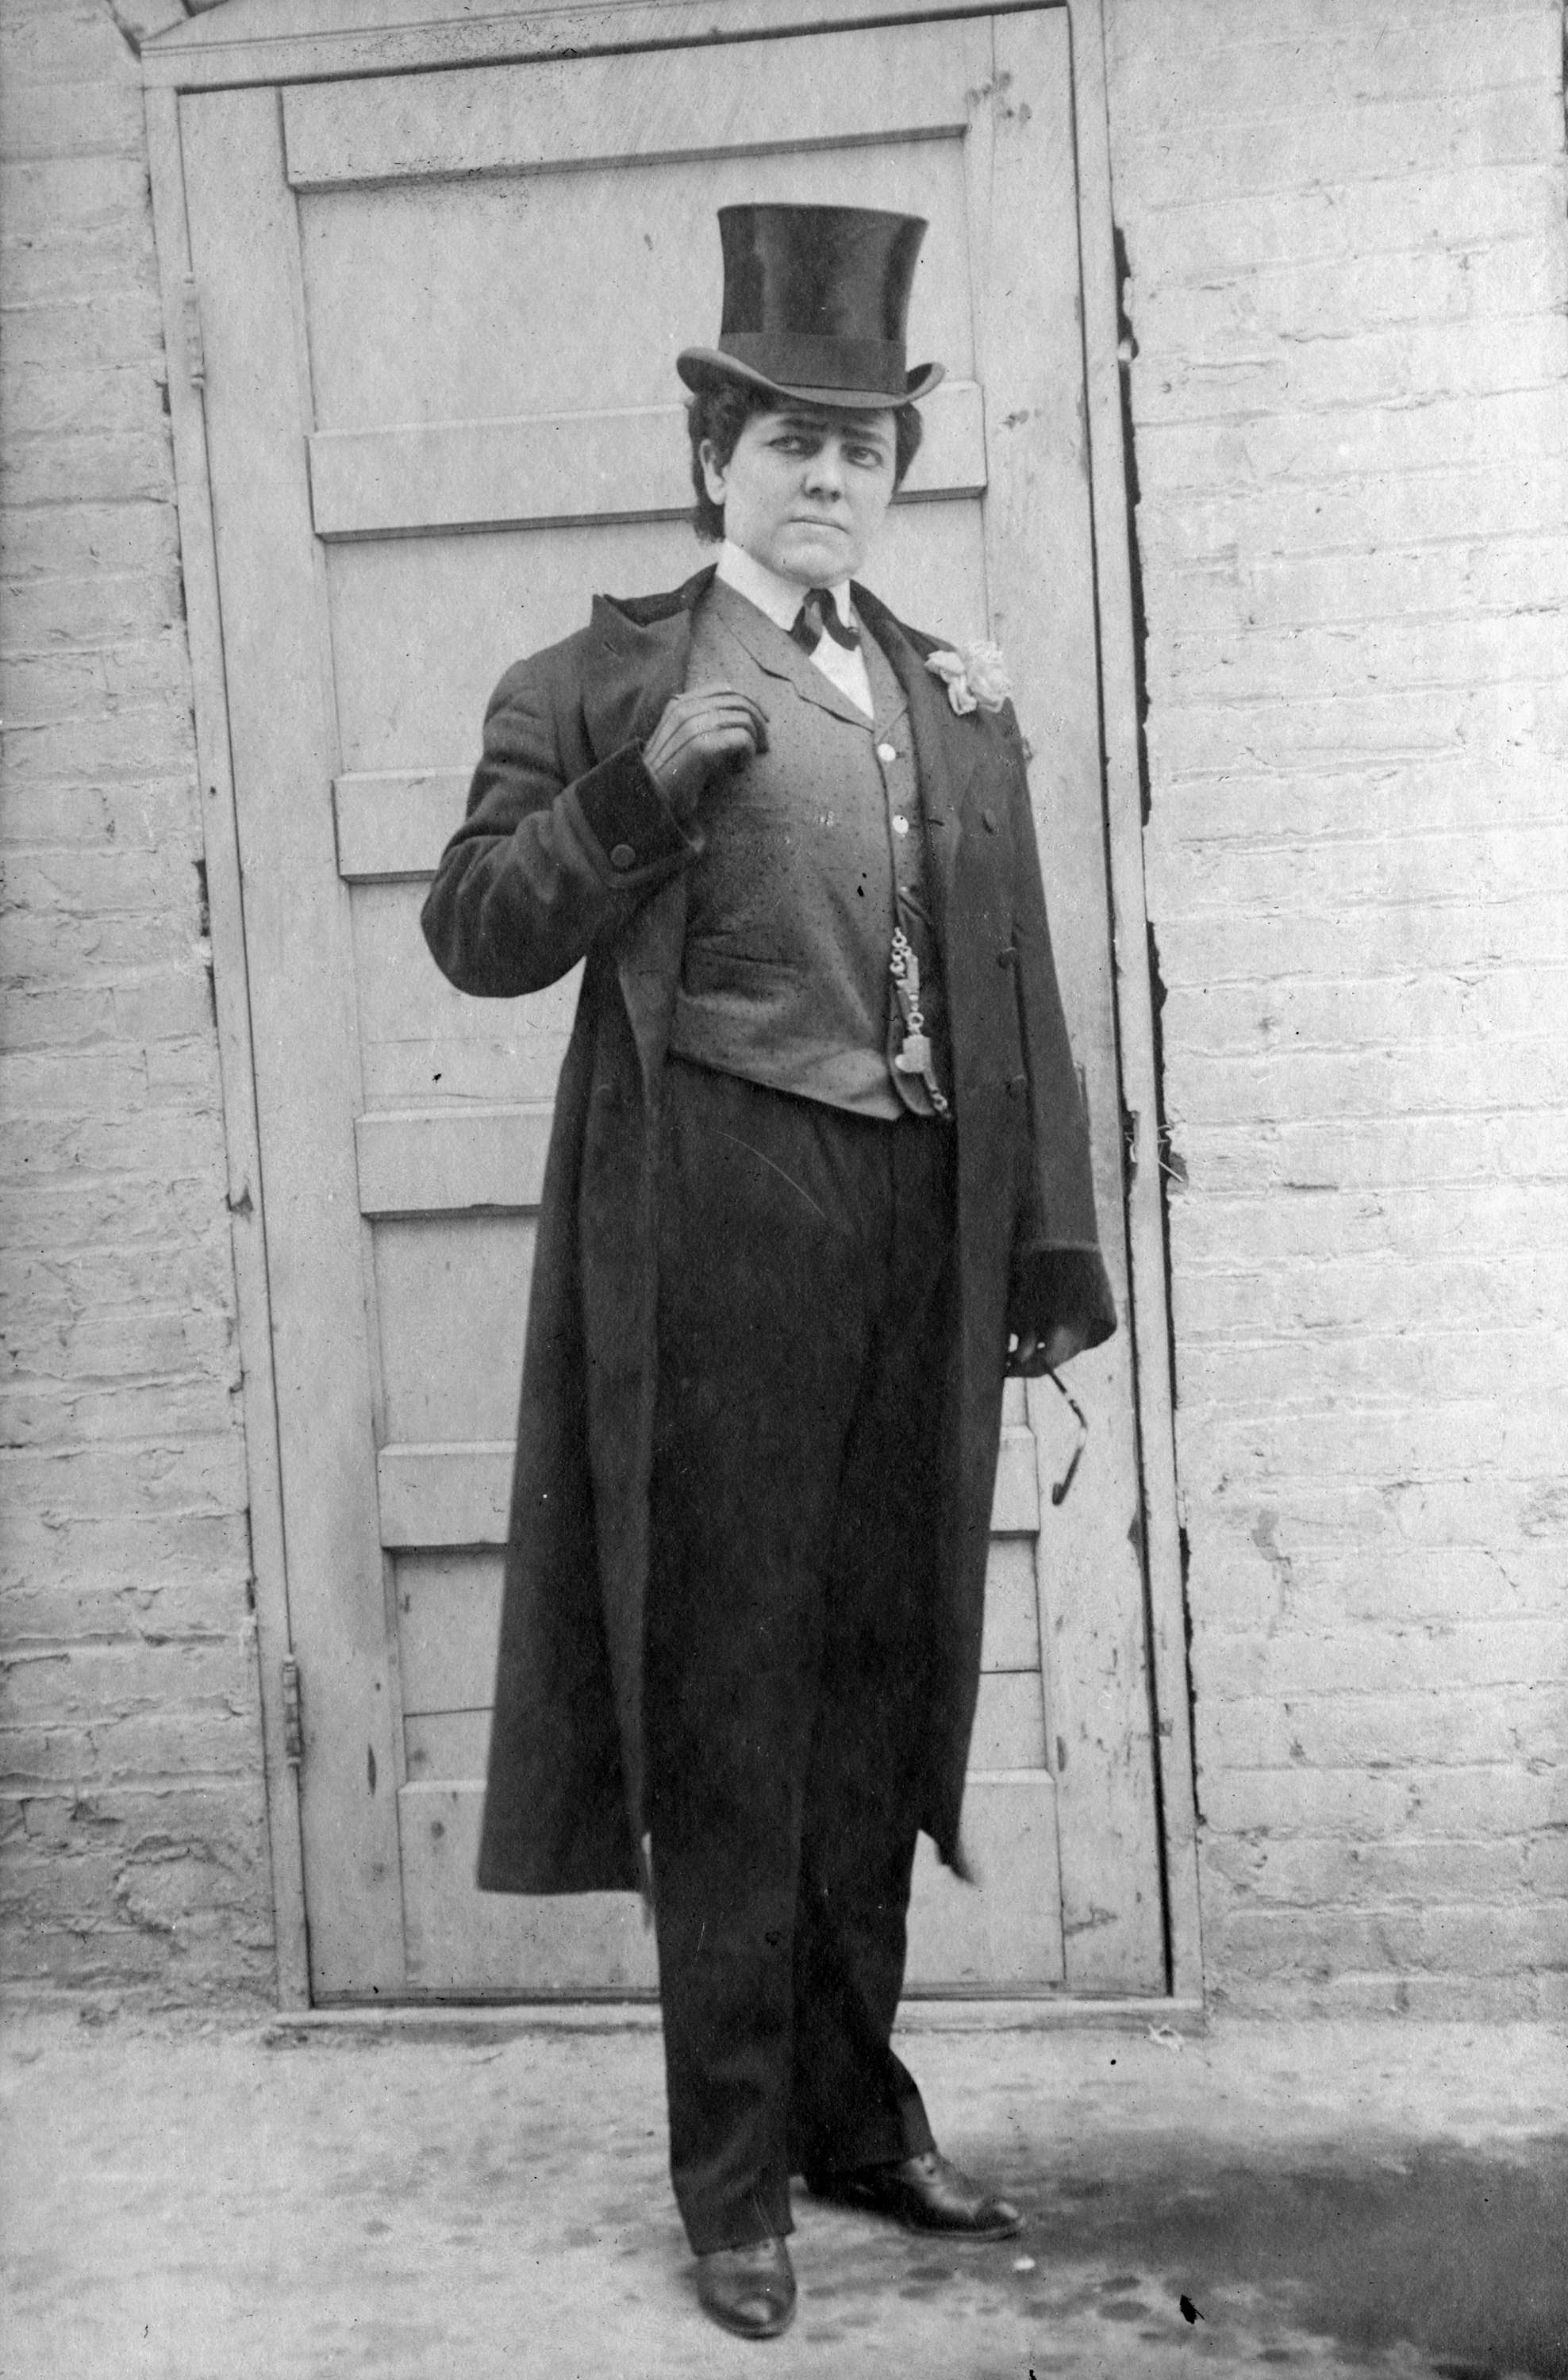 A woman in a top hat and tails poses in front of a door.